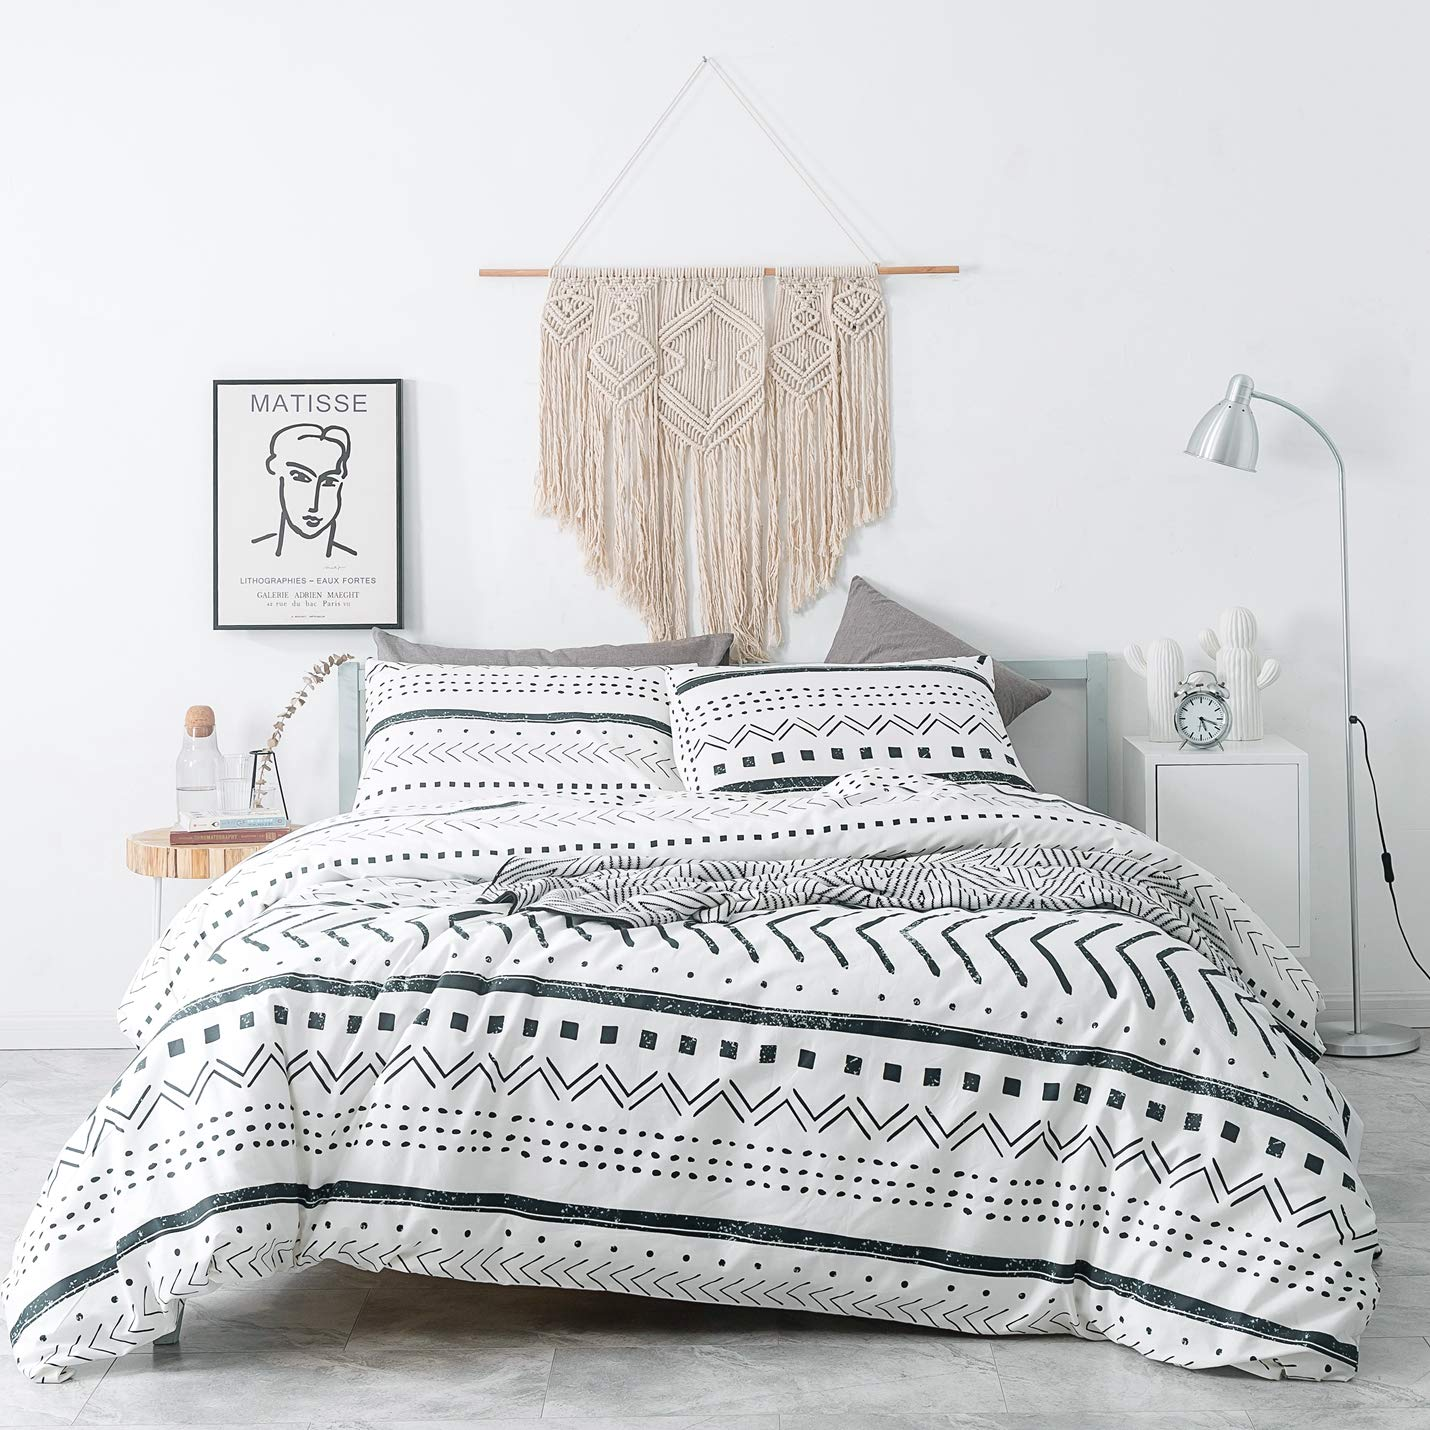 SUSYBAO 3 Pieces Duvet Cover Set 100% Natural Cotton White Queen Size Black Herringbone Geometric Pattern Bedding with Zipper Ties 1 Stripe Print Duvet Cover 2 Pillow Cases Hotel Quality Soft Durable